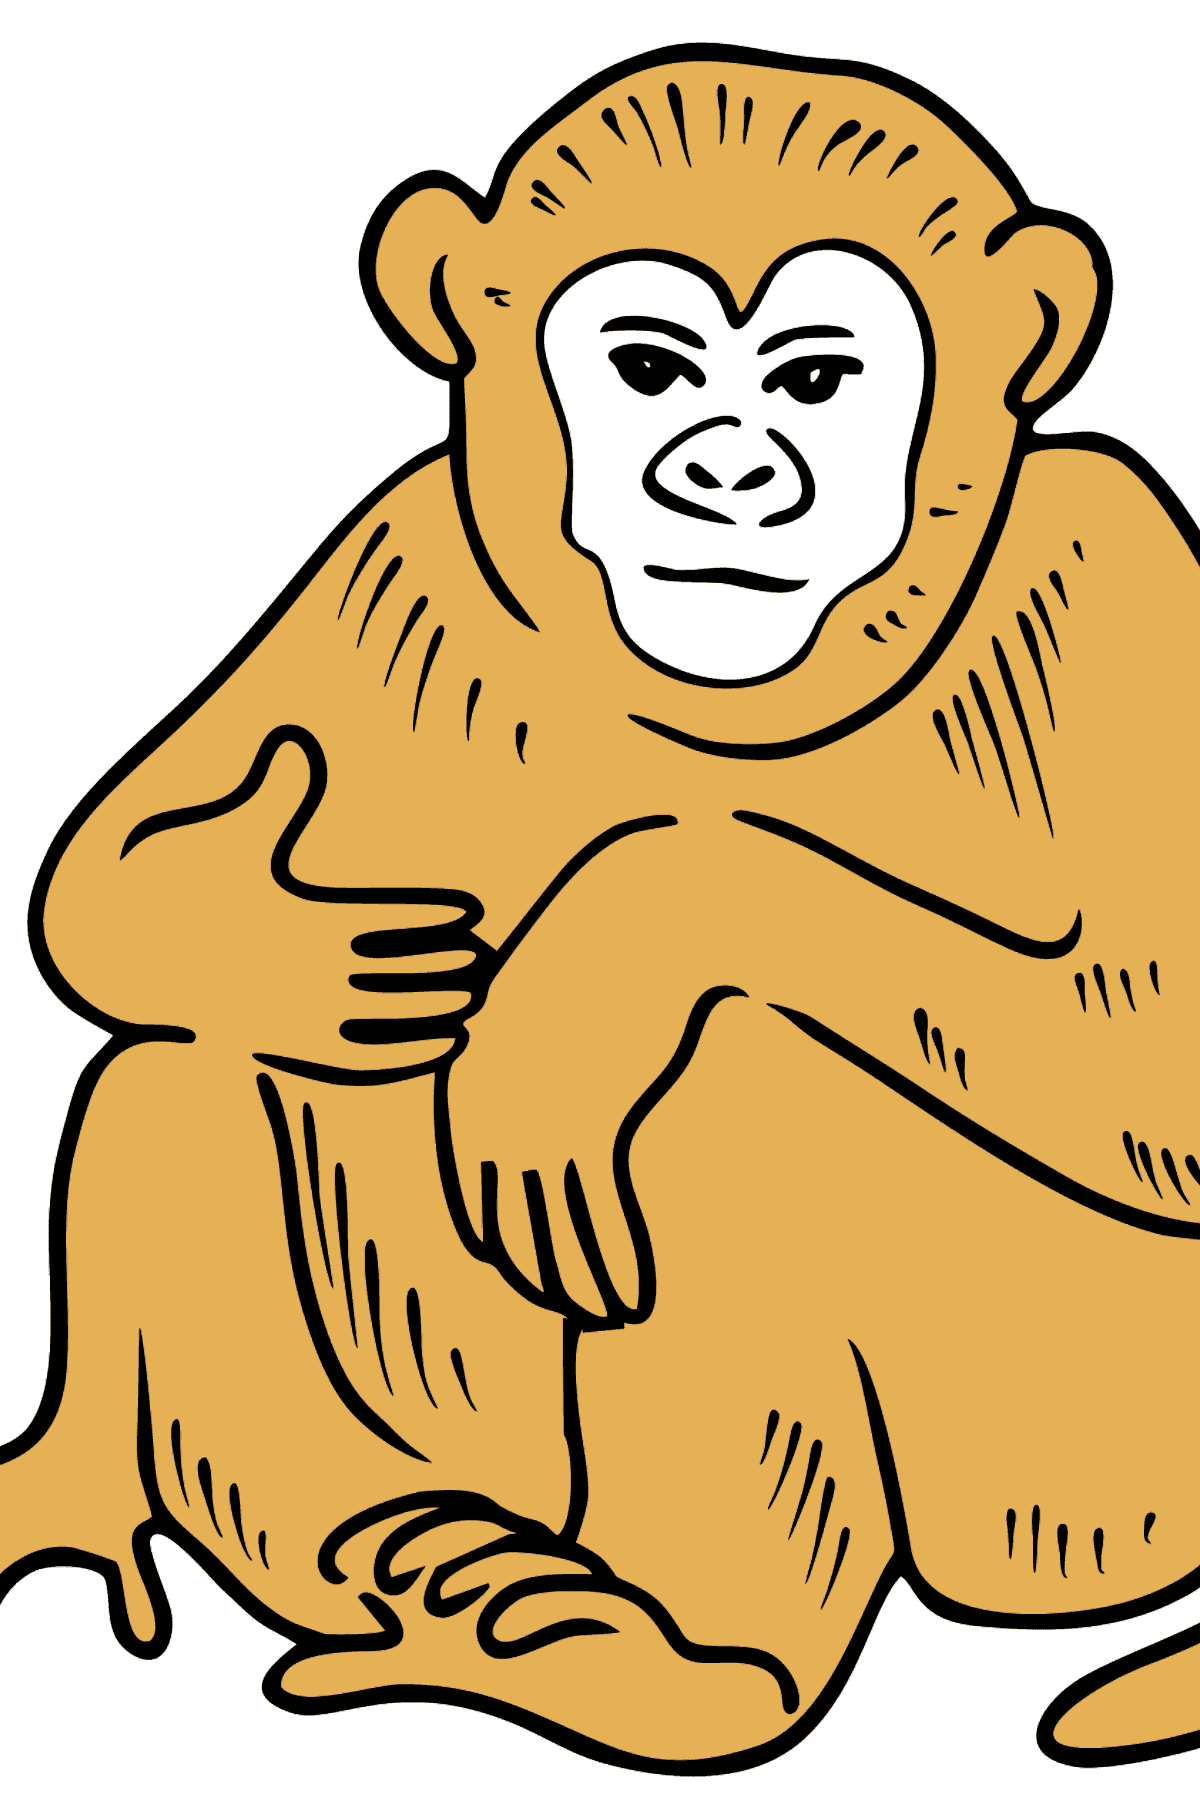 Monkey coloring page - Coloring Pages for Kids